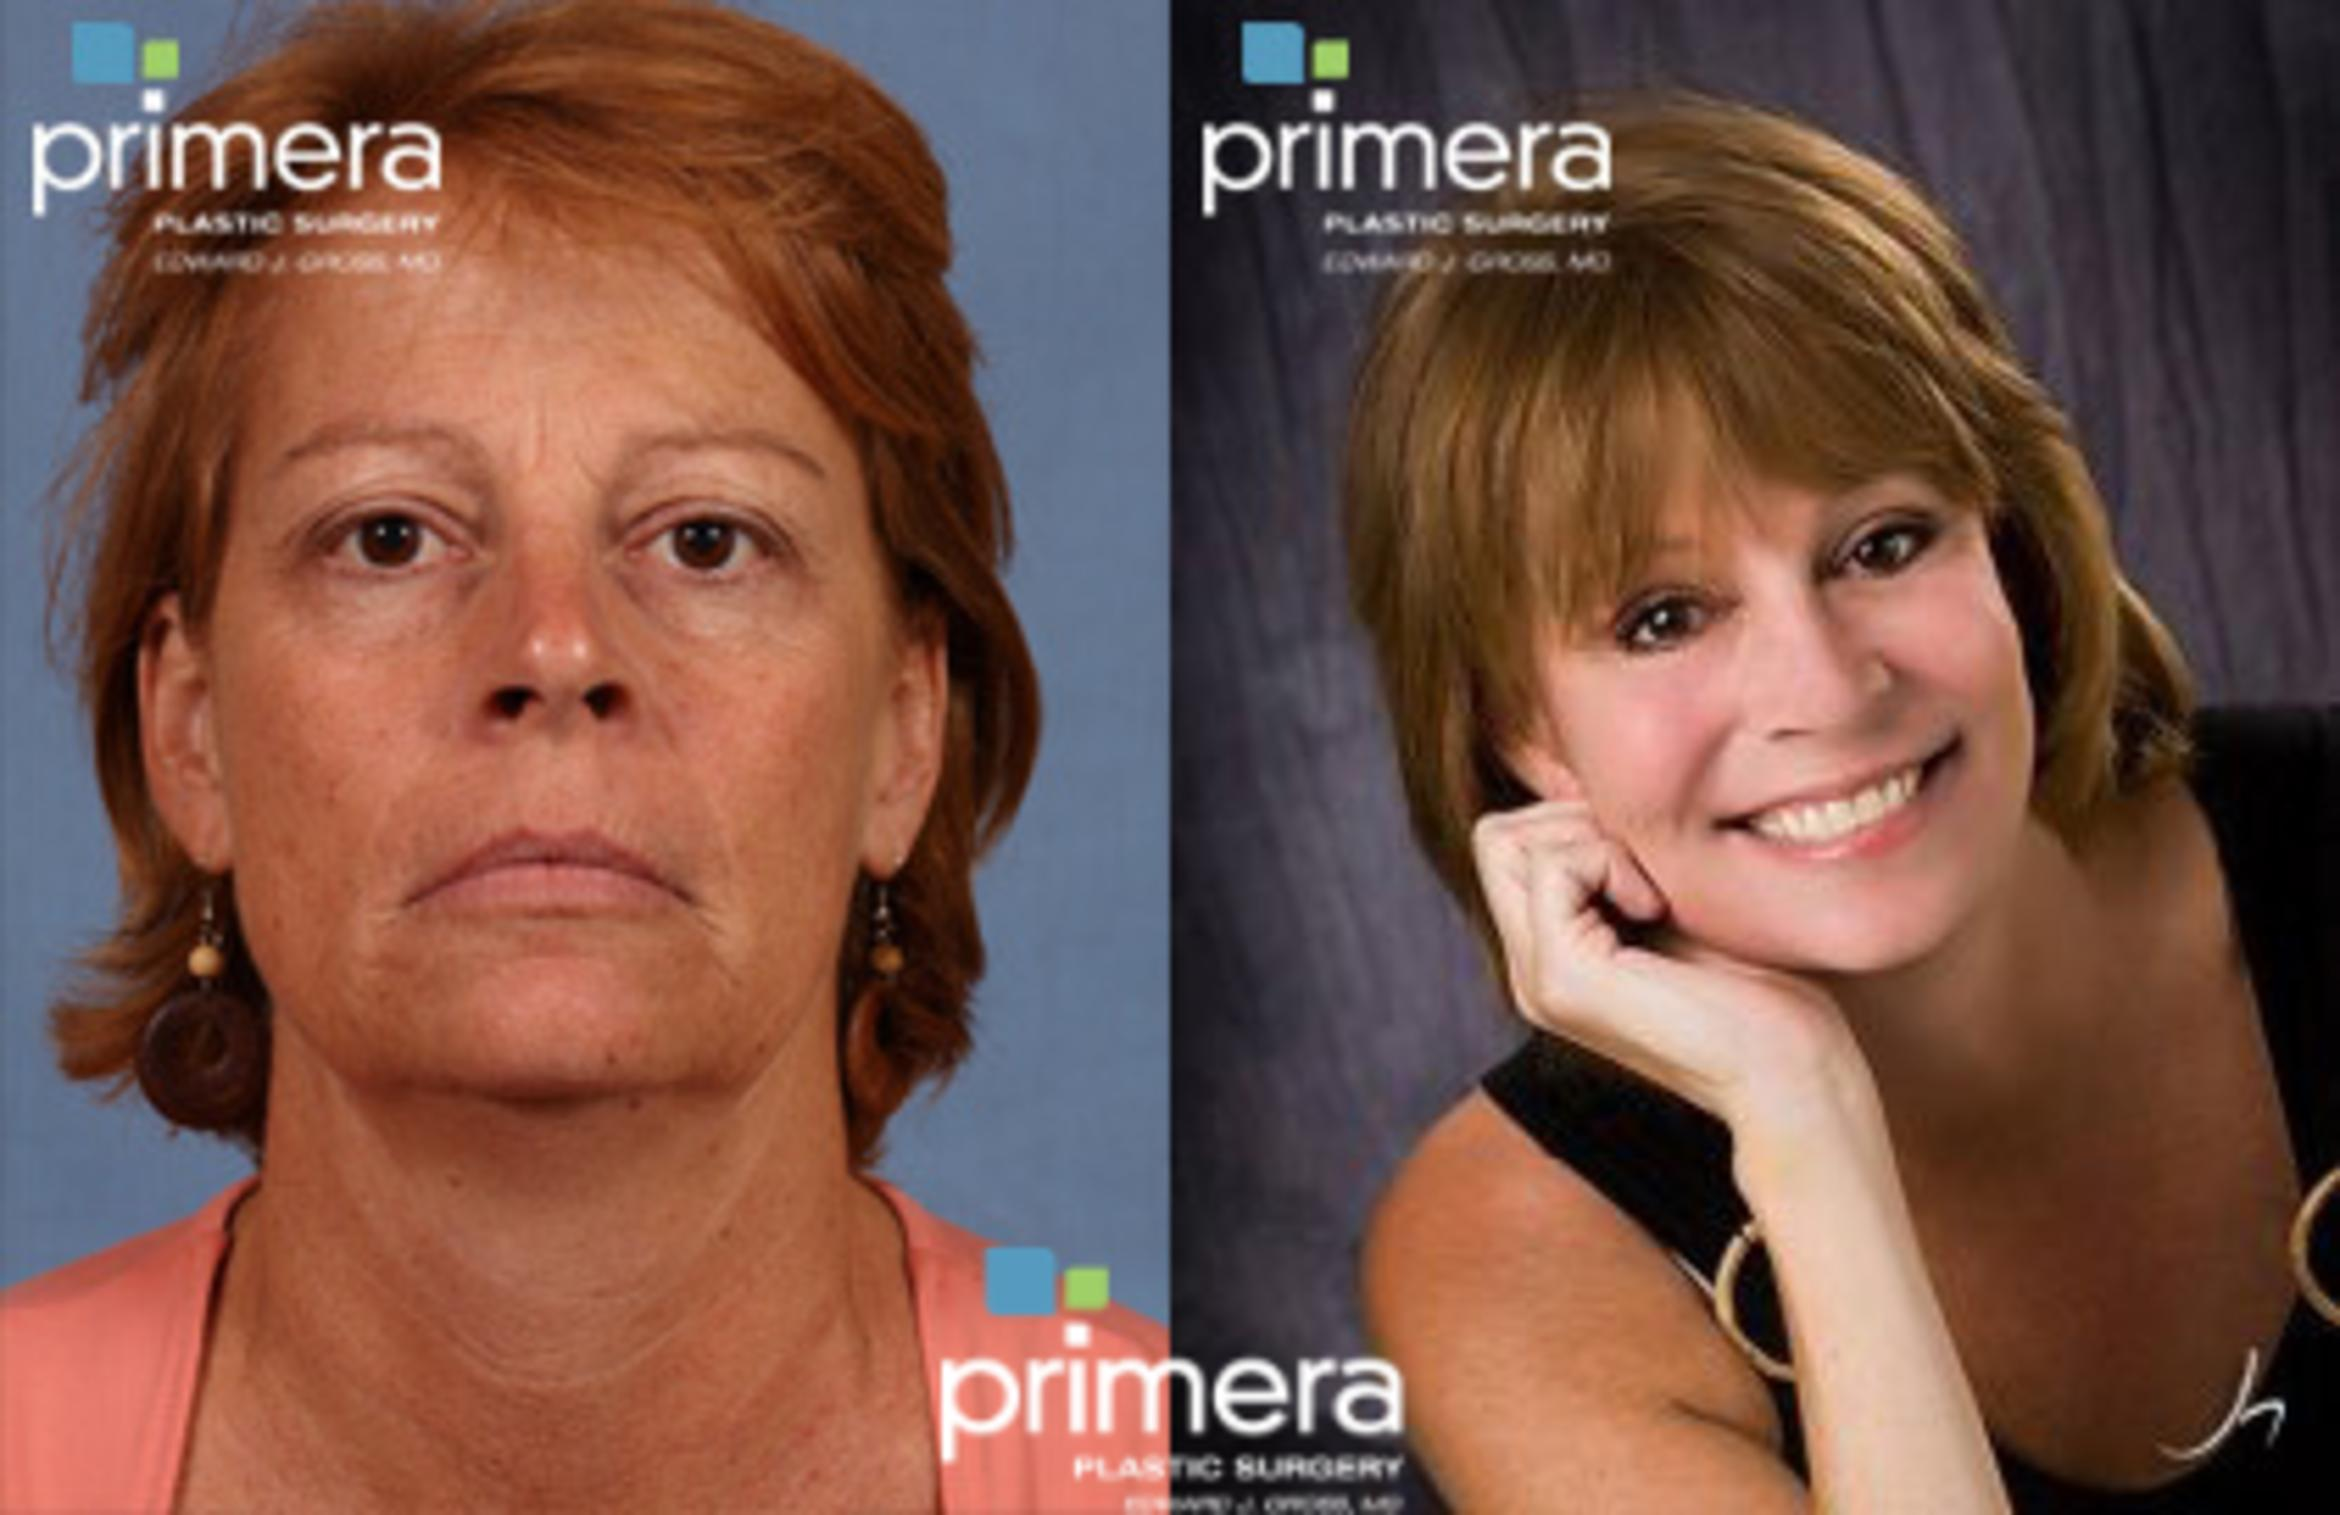 Chemical Peel Before & After Photo | Orlando, Florida | Primera Plastic Surgery